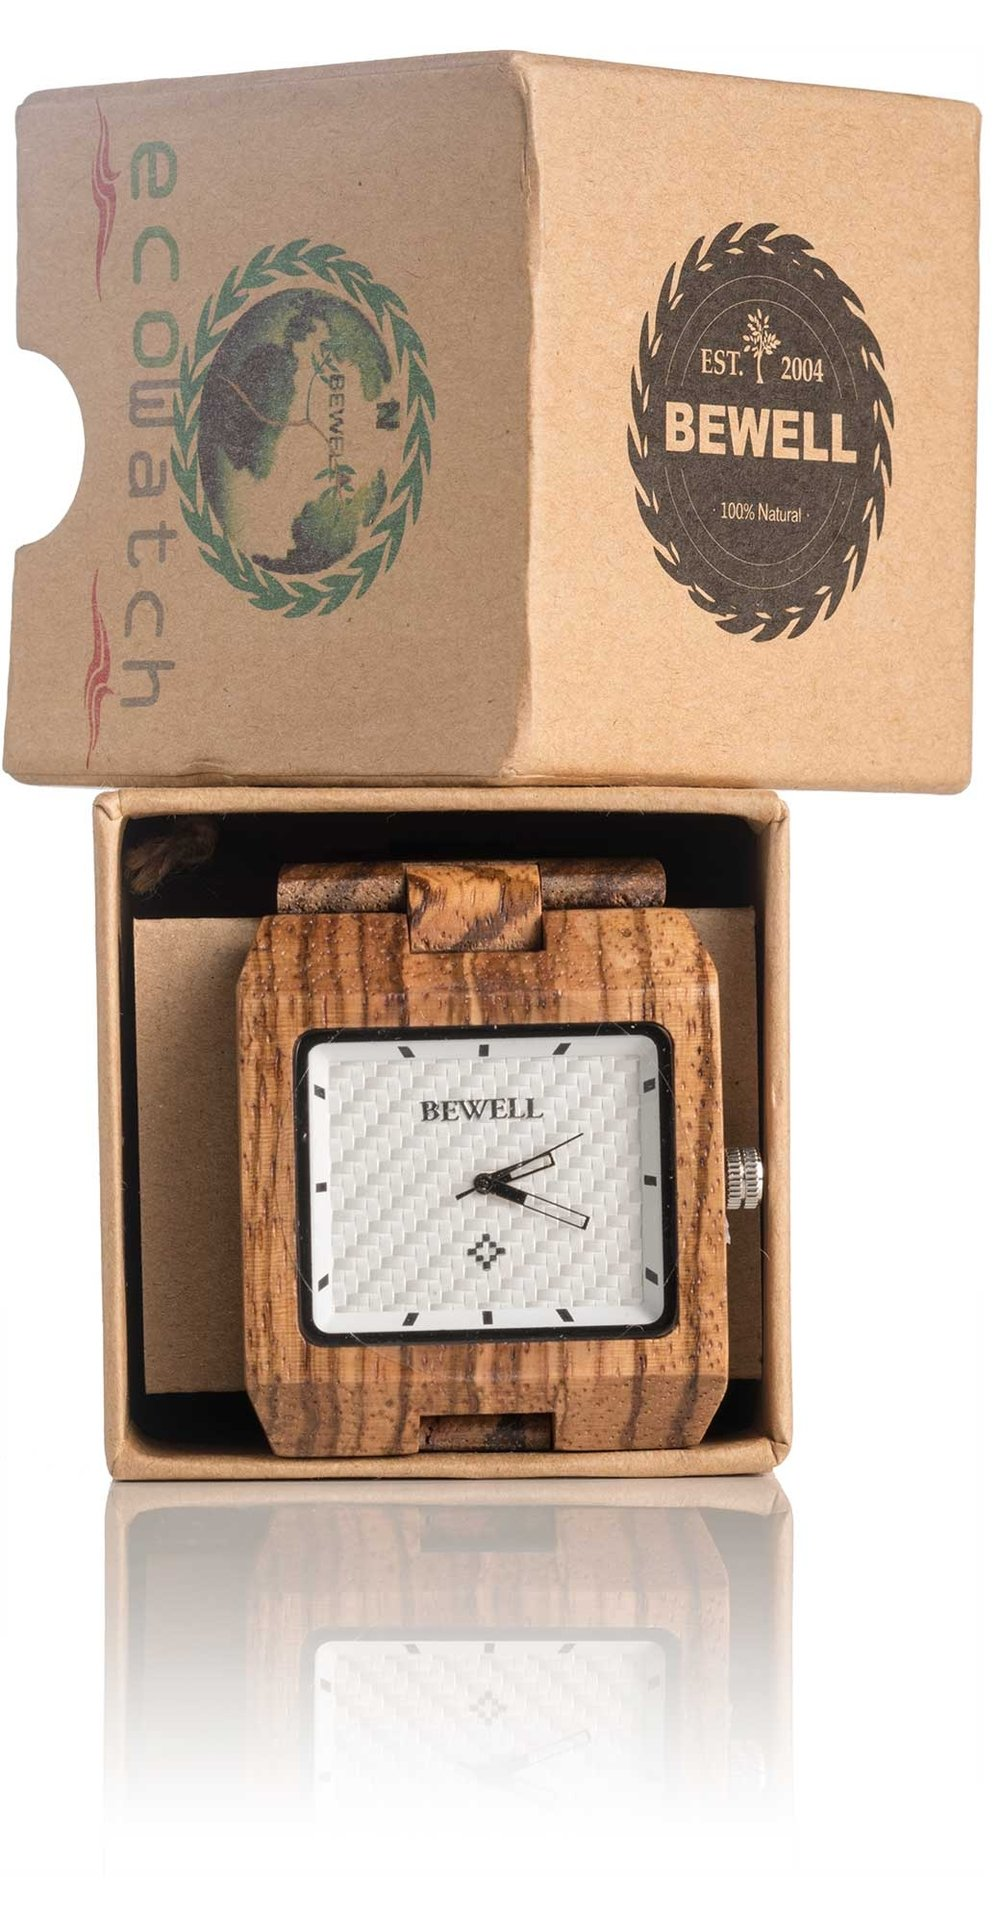 52%of people make purchase decisions due to packaging ... - Packaging is as important as the product inside.The packaging of a product can communicate just as much as the product itself. The Bewell Watch Co prides itself on it's wooden watches and being an eco friendly company. What better way to share and show this than through eco friendly, clearly recycled packaging.